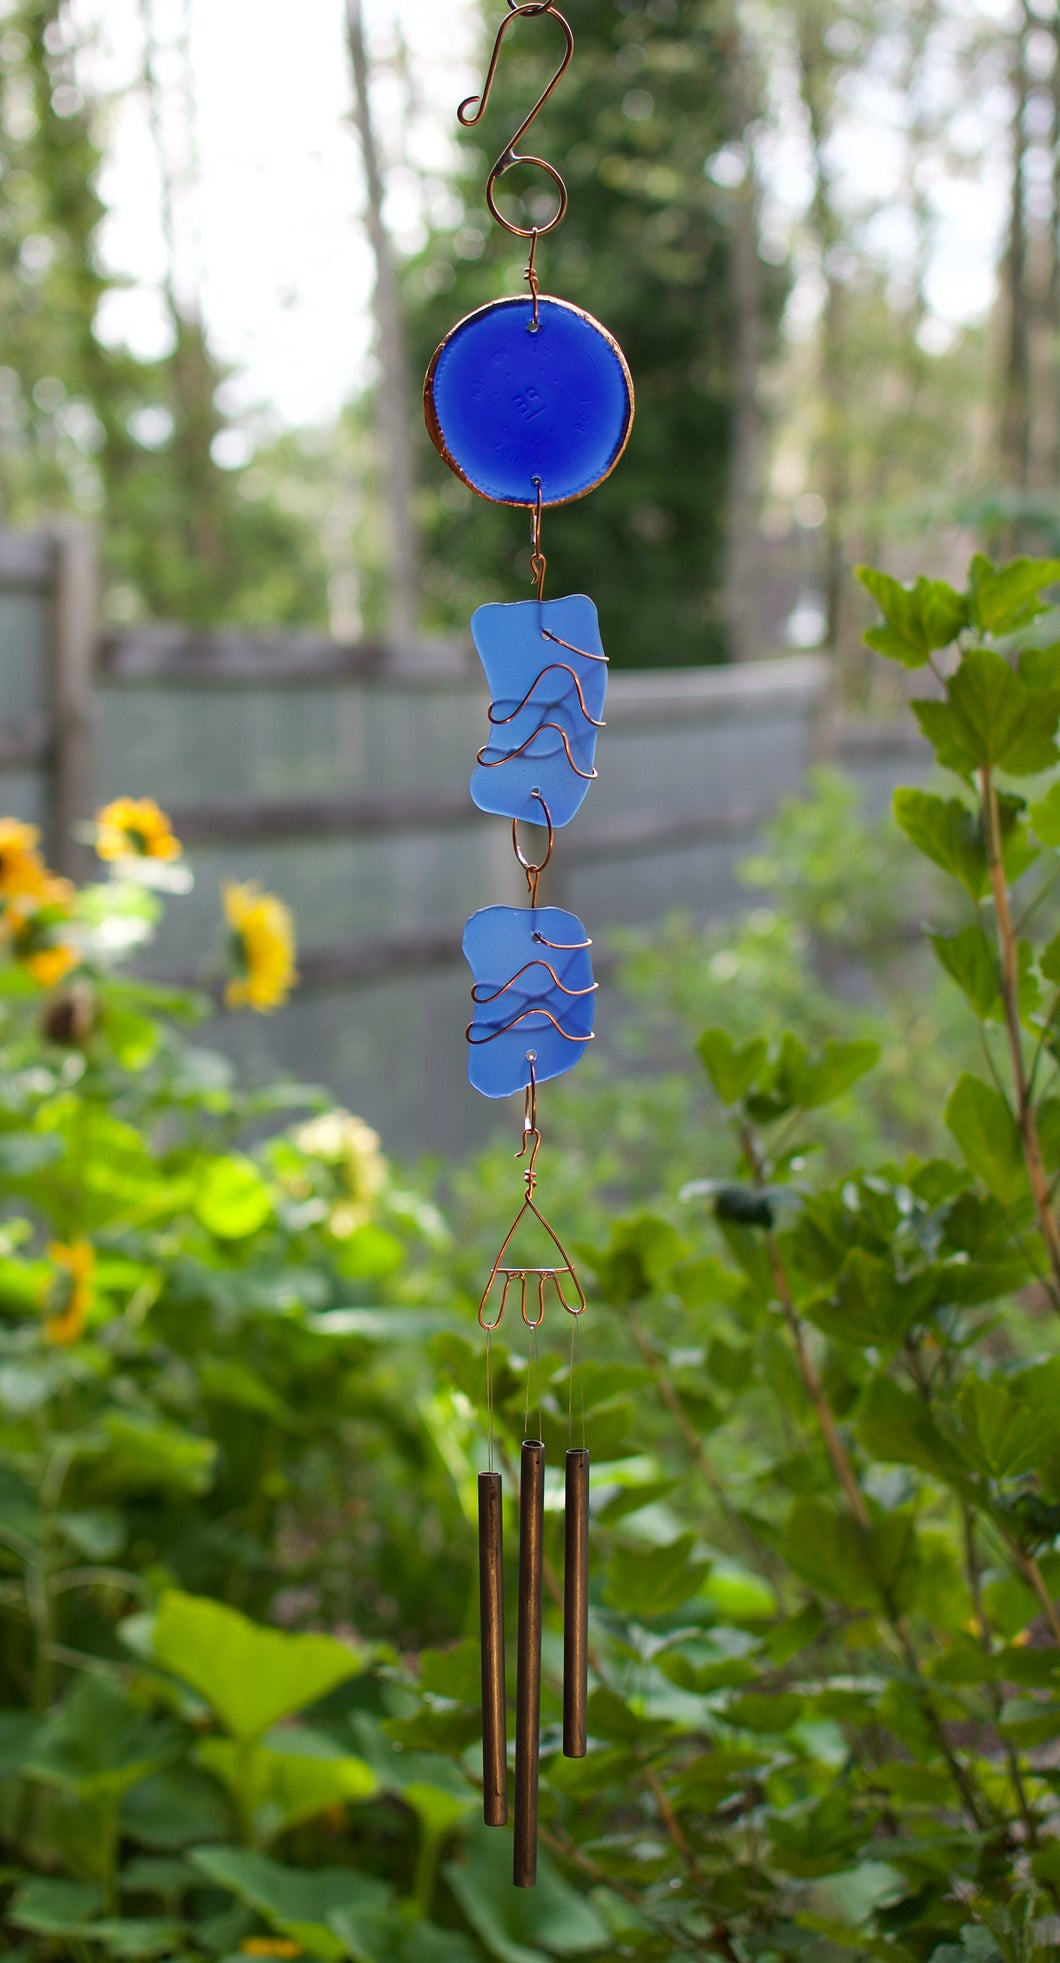 Blue Sea Glass Outdoor Wind Chime Handcrafted